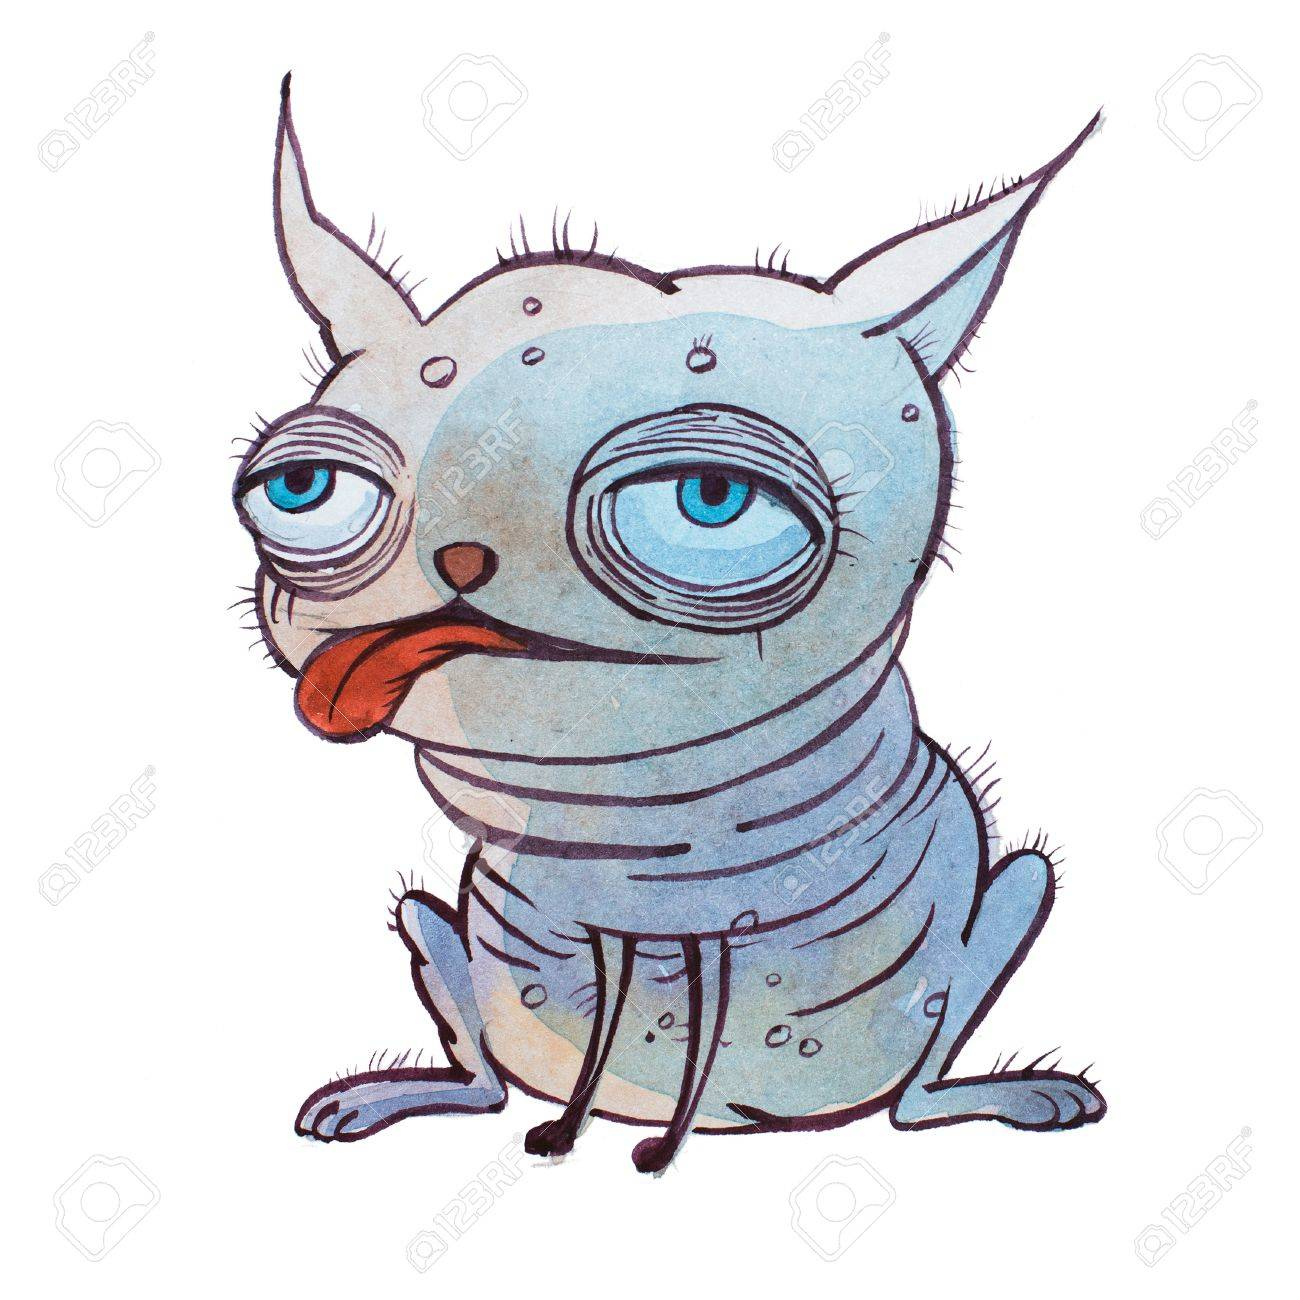 Small Ugly Bald Cartoon Dog With Big Puffy Eyes Set Quite Far Stock Photo Picture And Royalty Free Image Image 82237199